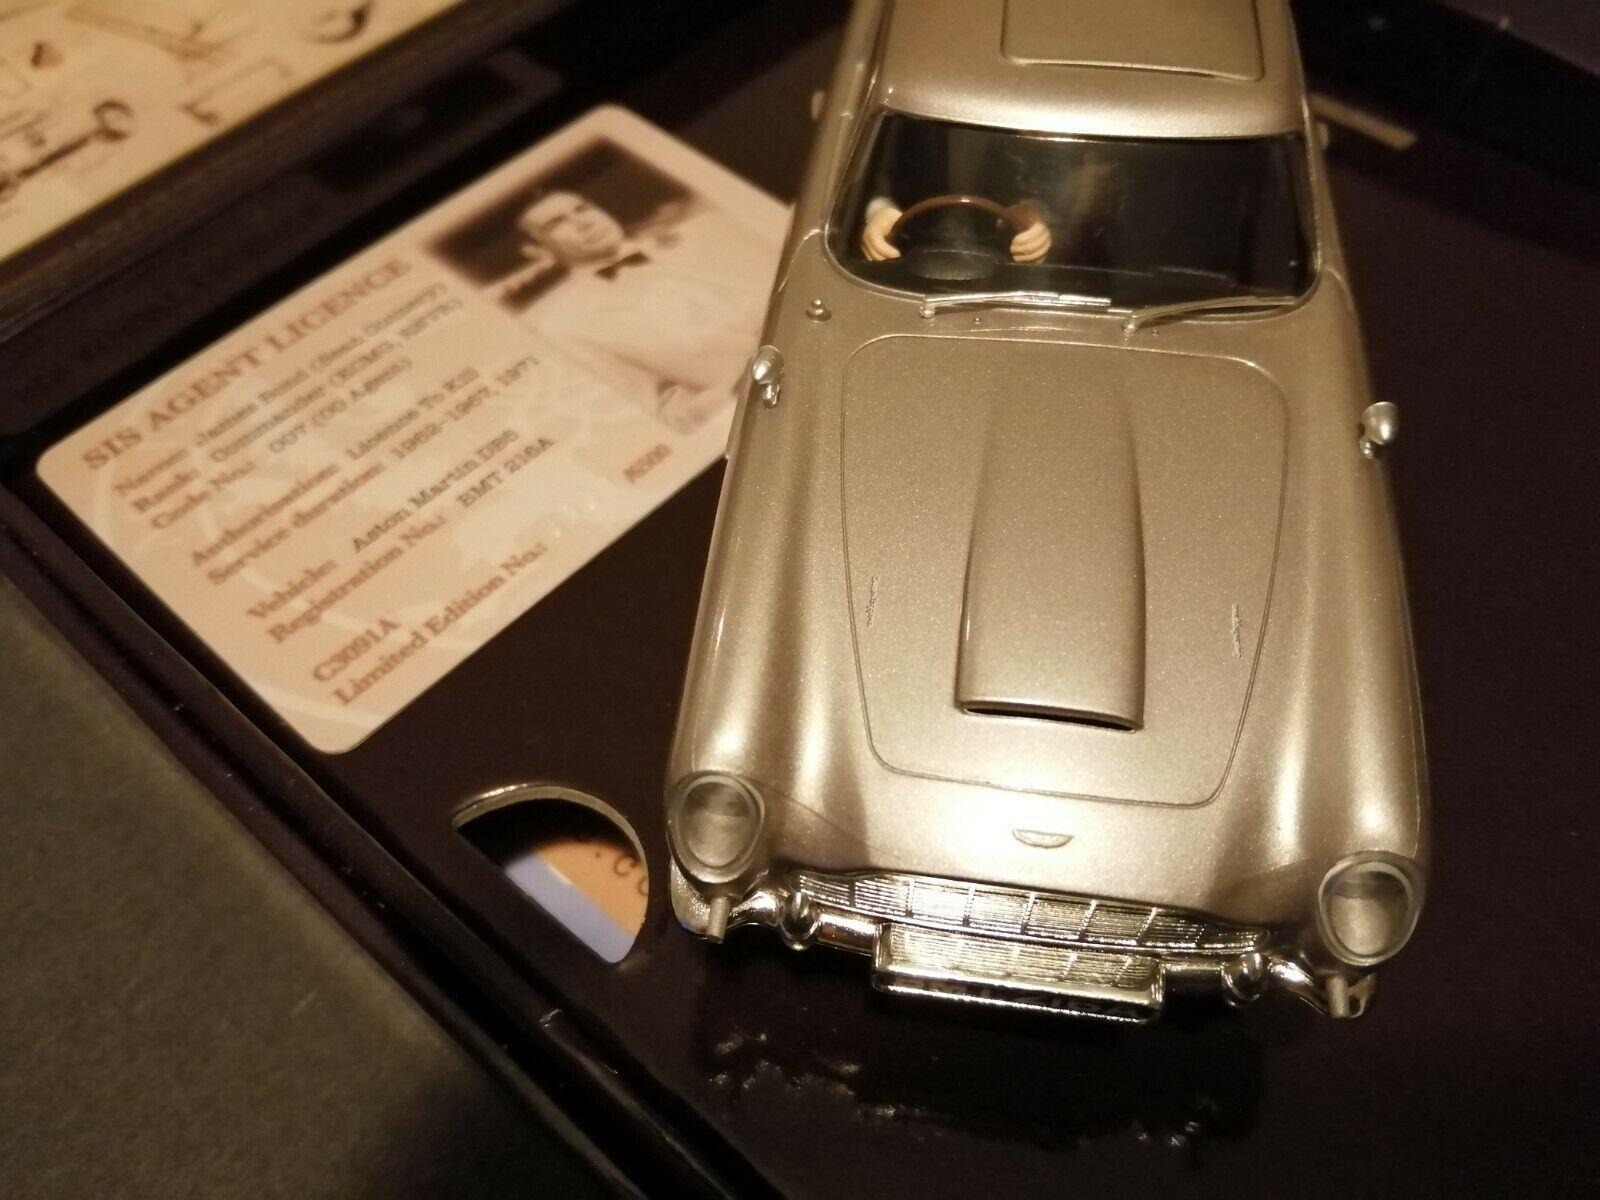 Scalextric C3091A Goldfinger James Bond 007 Aston Martin Db5 for sale online